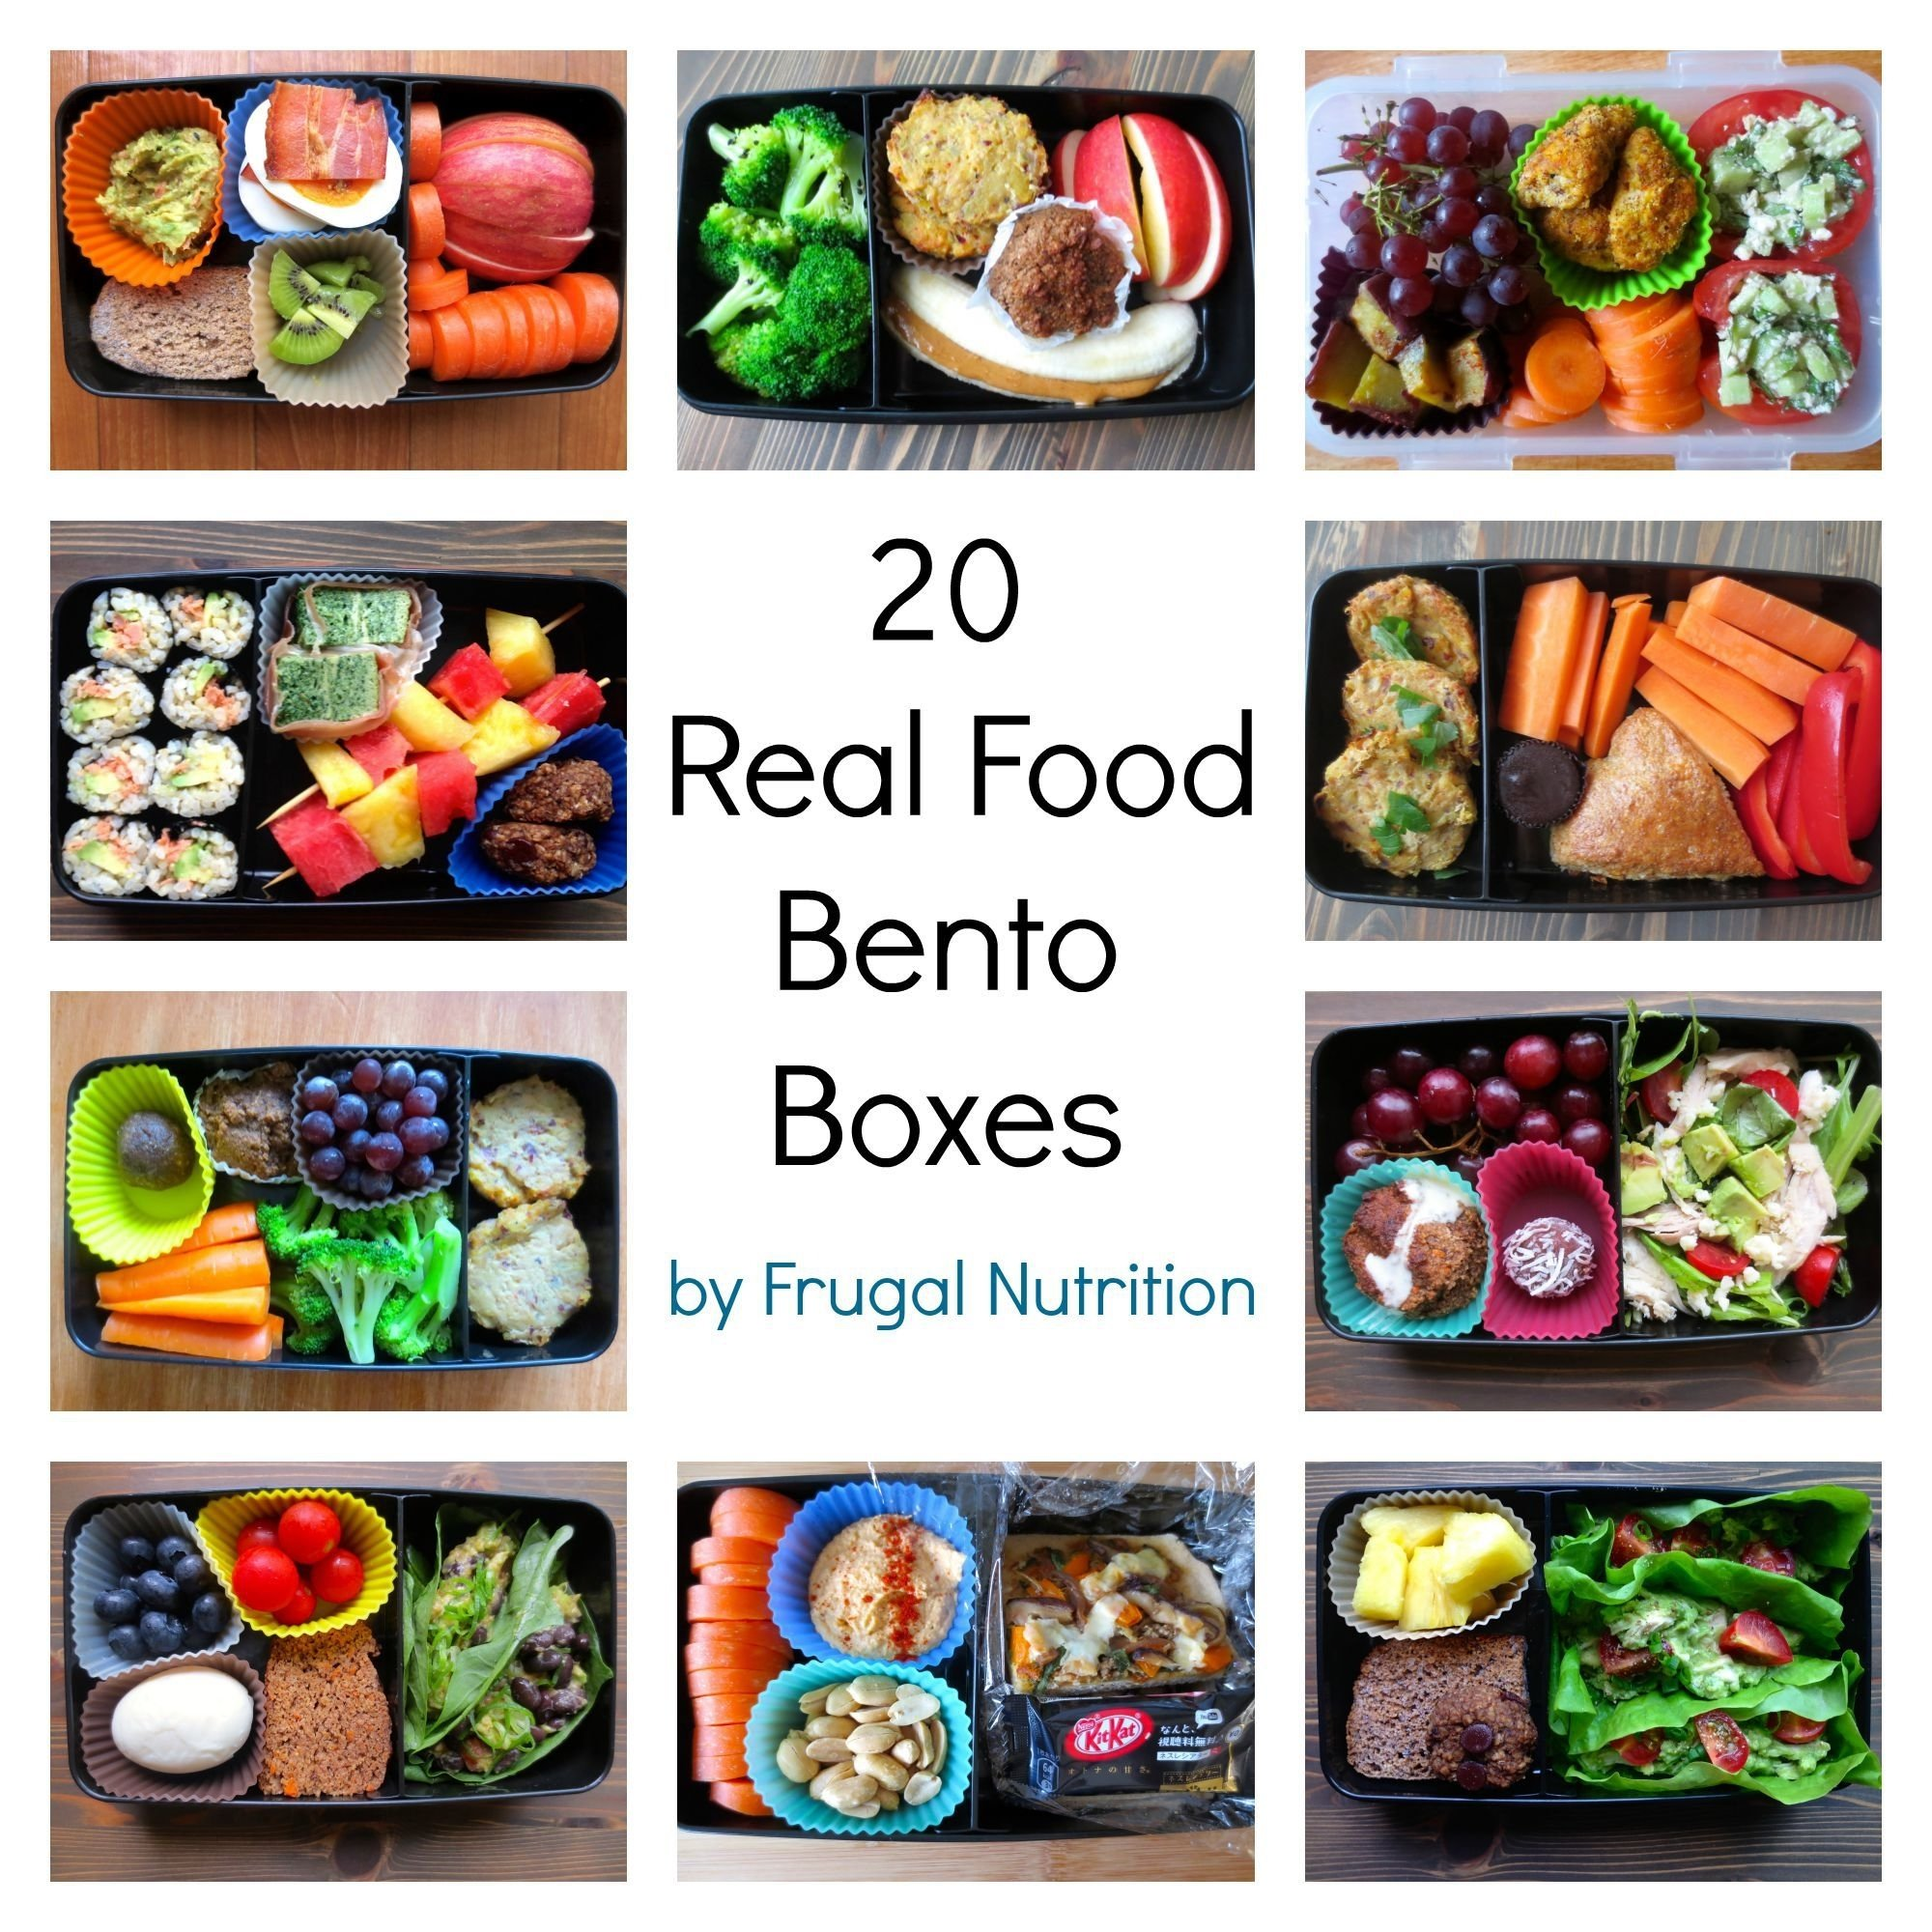 10 Nice Bento Box Ideas For Adults real food bento box round up 20 lunch box ideas frugal nutrition 2020